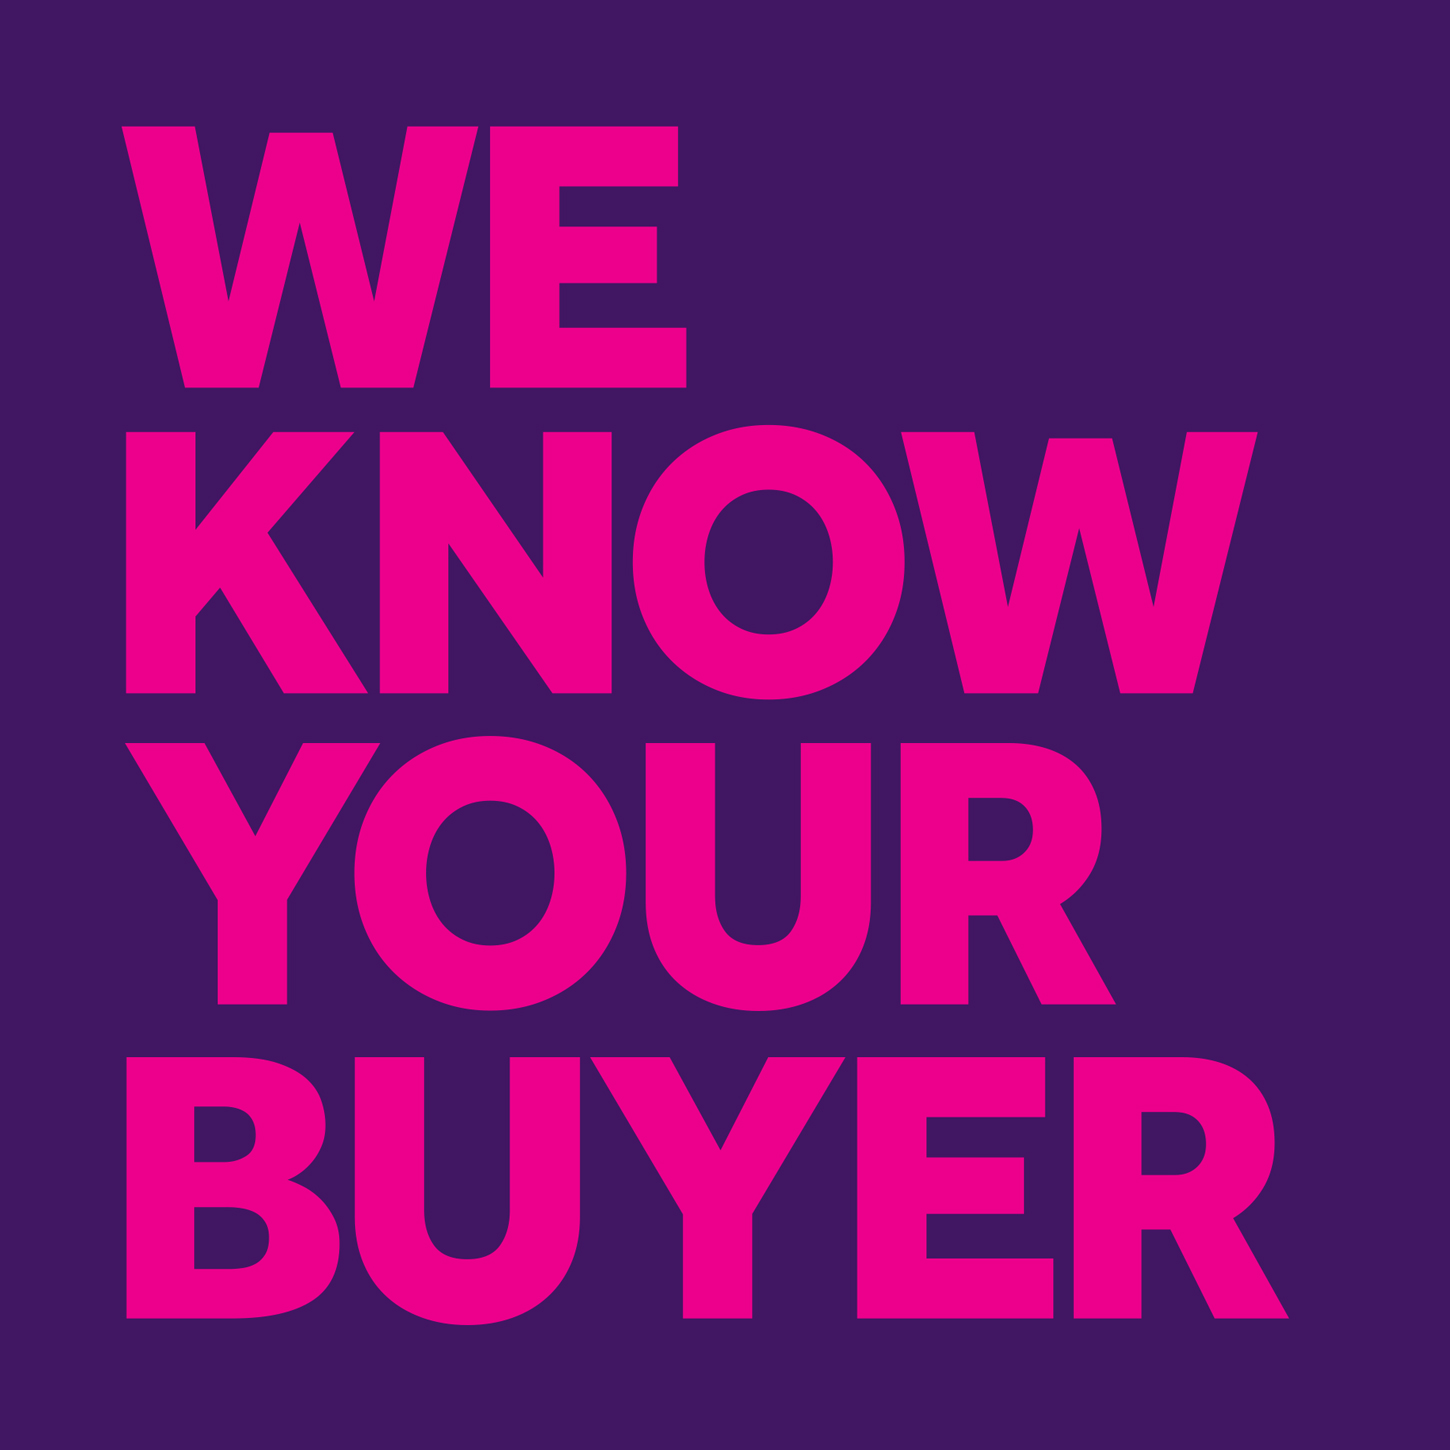 haart - We know your buyer